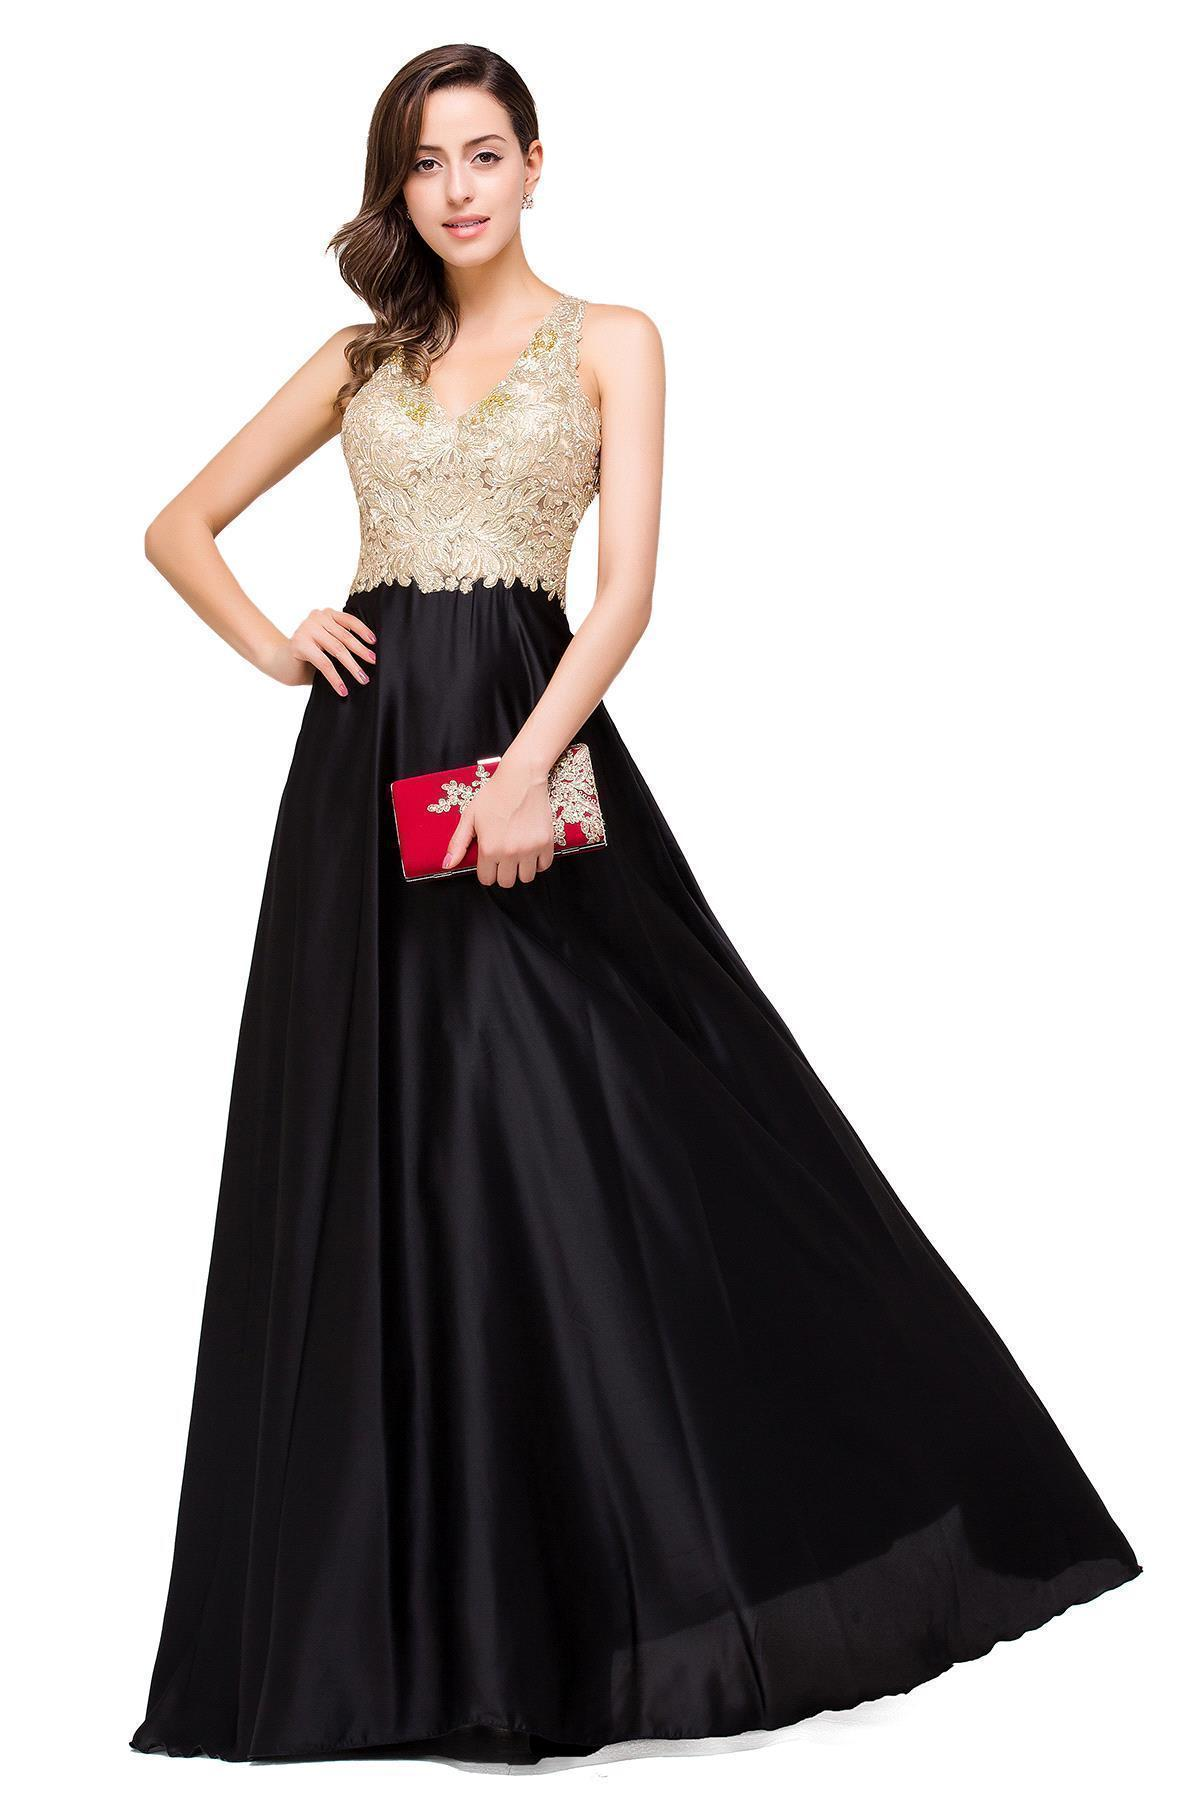 Details about Formal Wedding Bridesmaid Long Evening Party Ball Prom Gown  Cocktail Maxi Dress 817450bbb